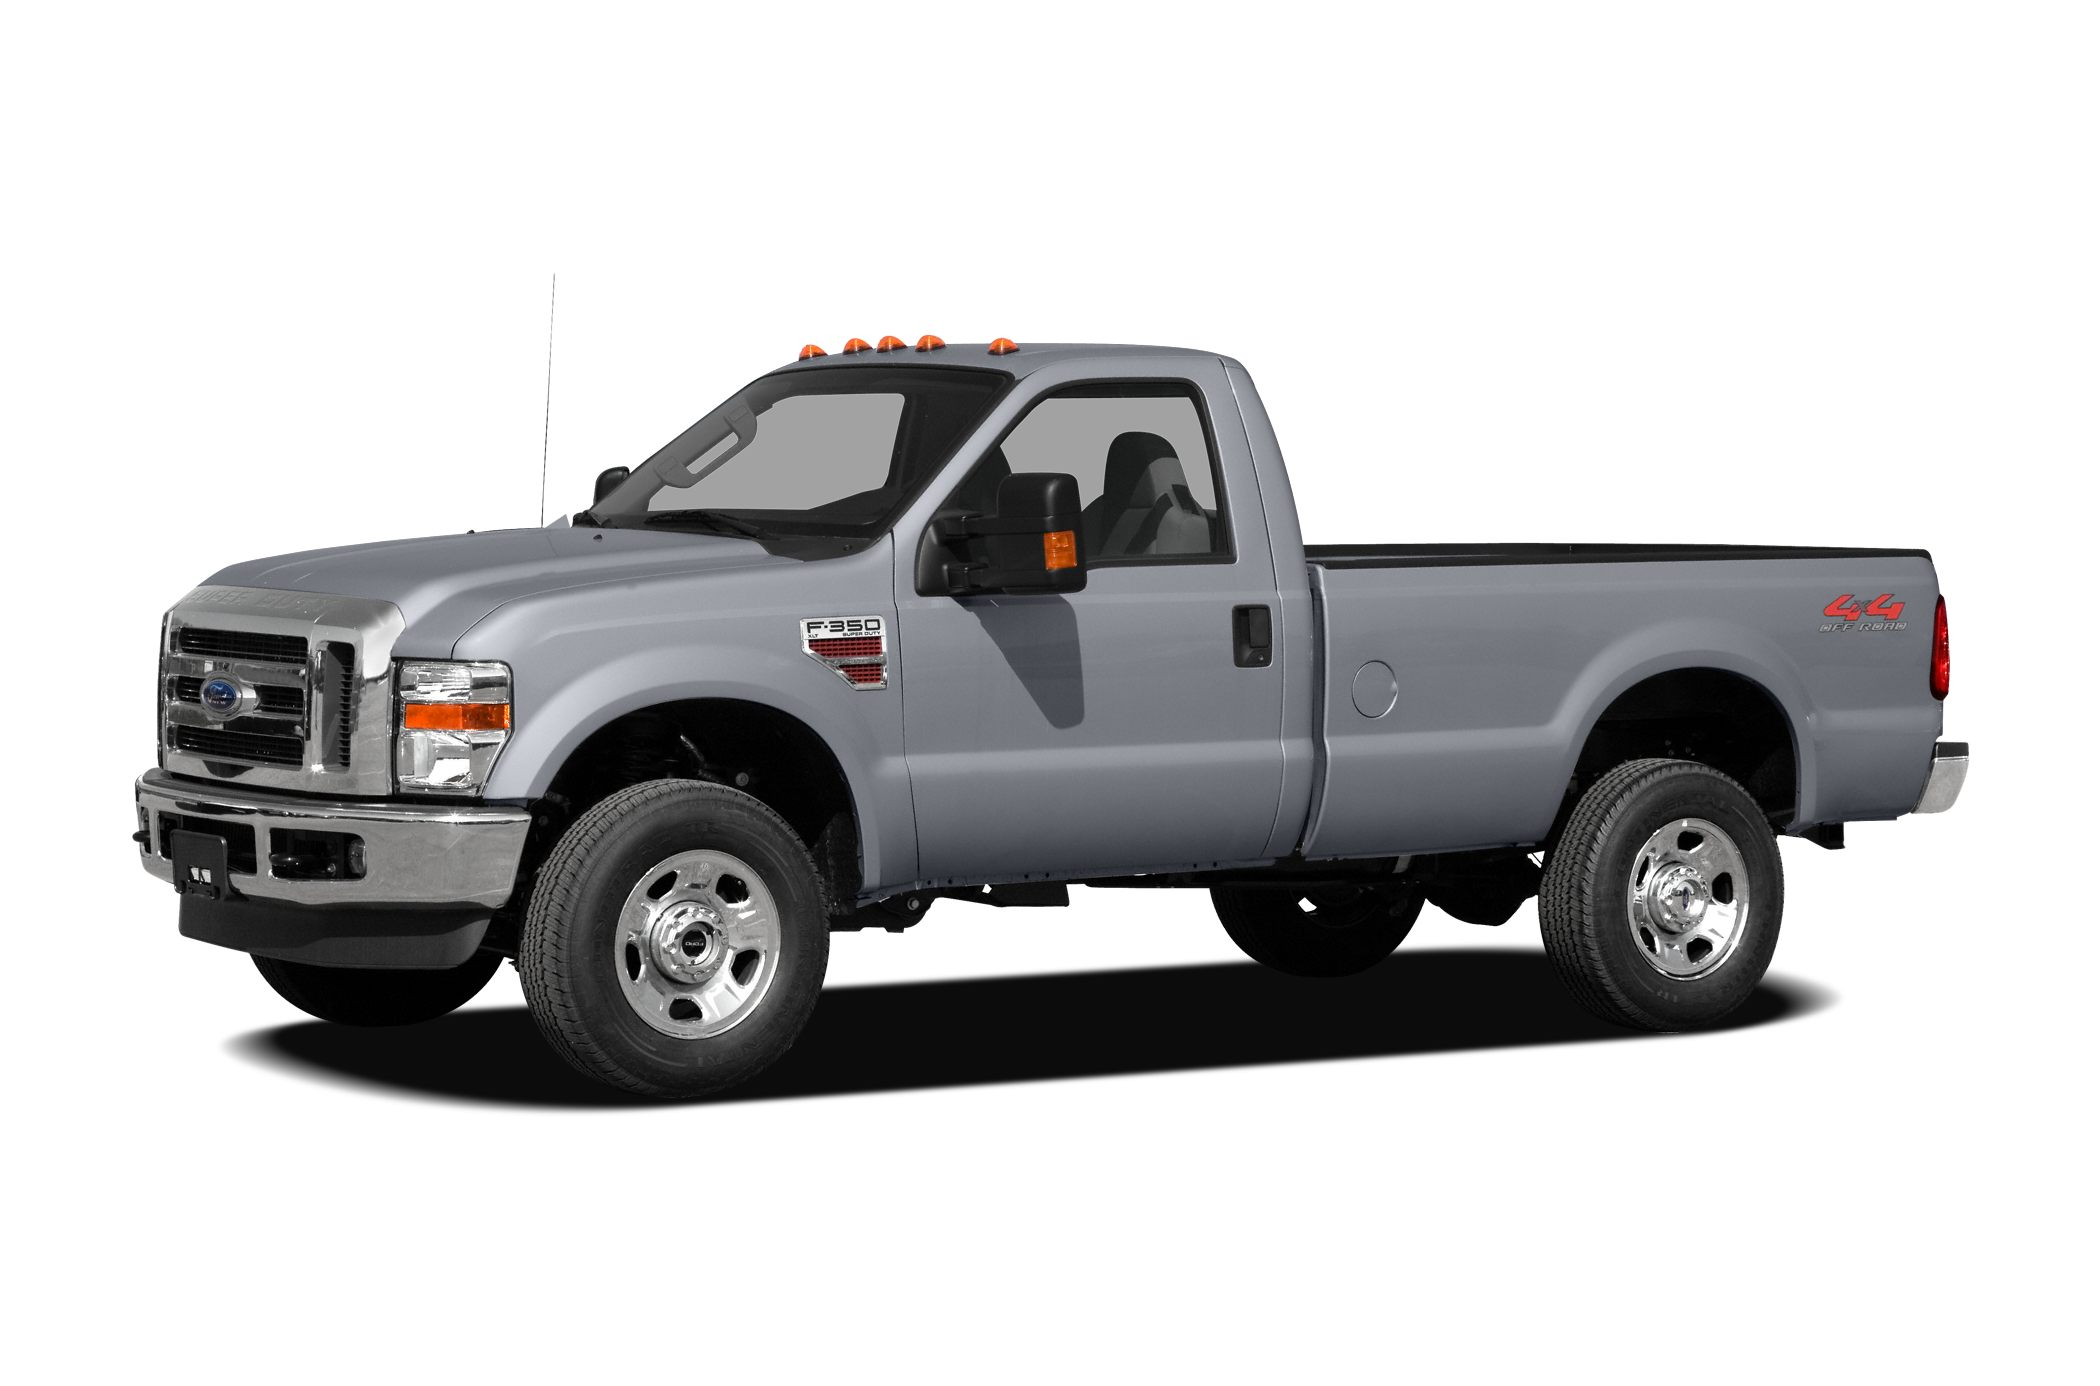 2010 Ford F350 XLT Super Duty Crew Cab Pickup for sale in McKinney for $22,991 with 151,623 miles.